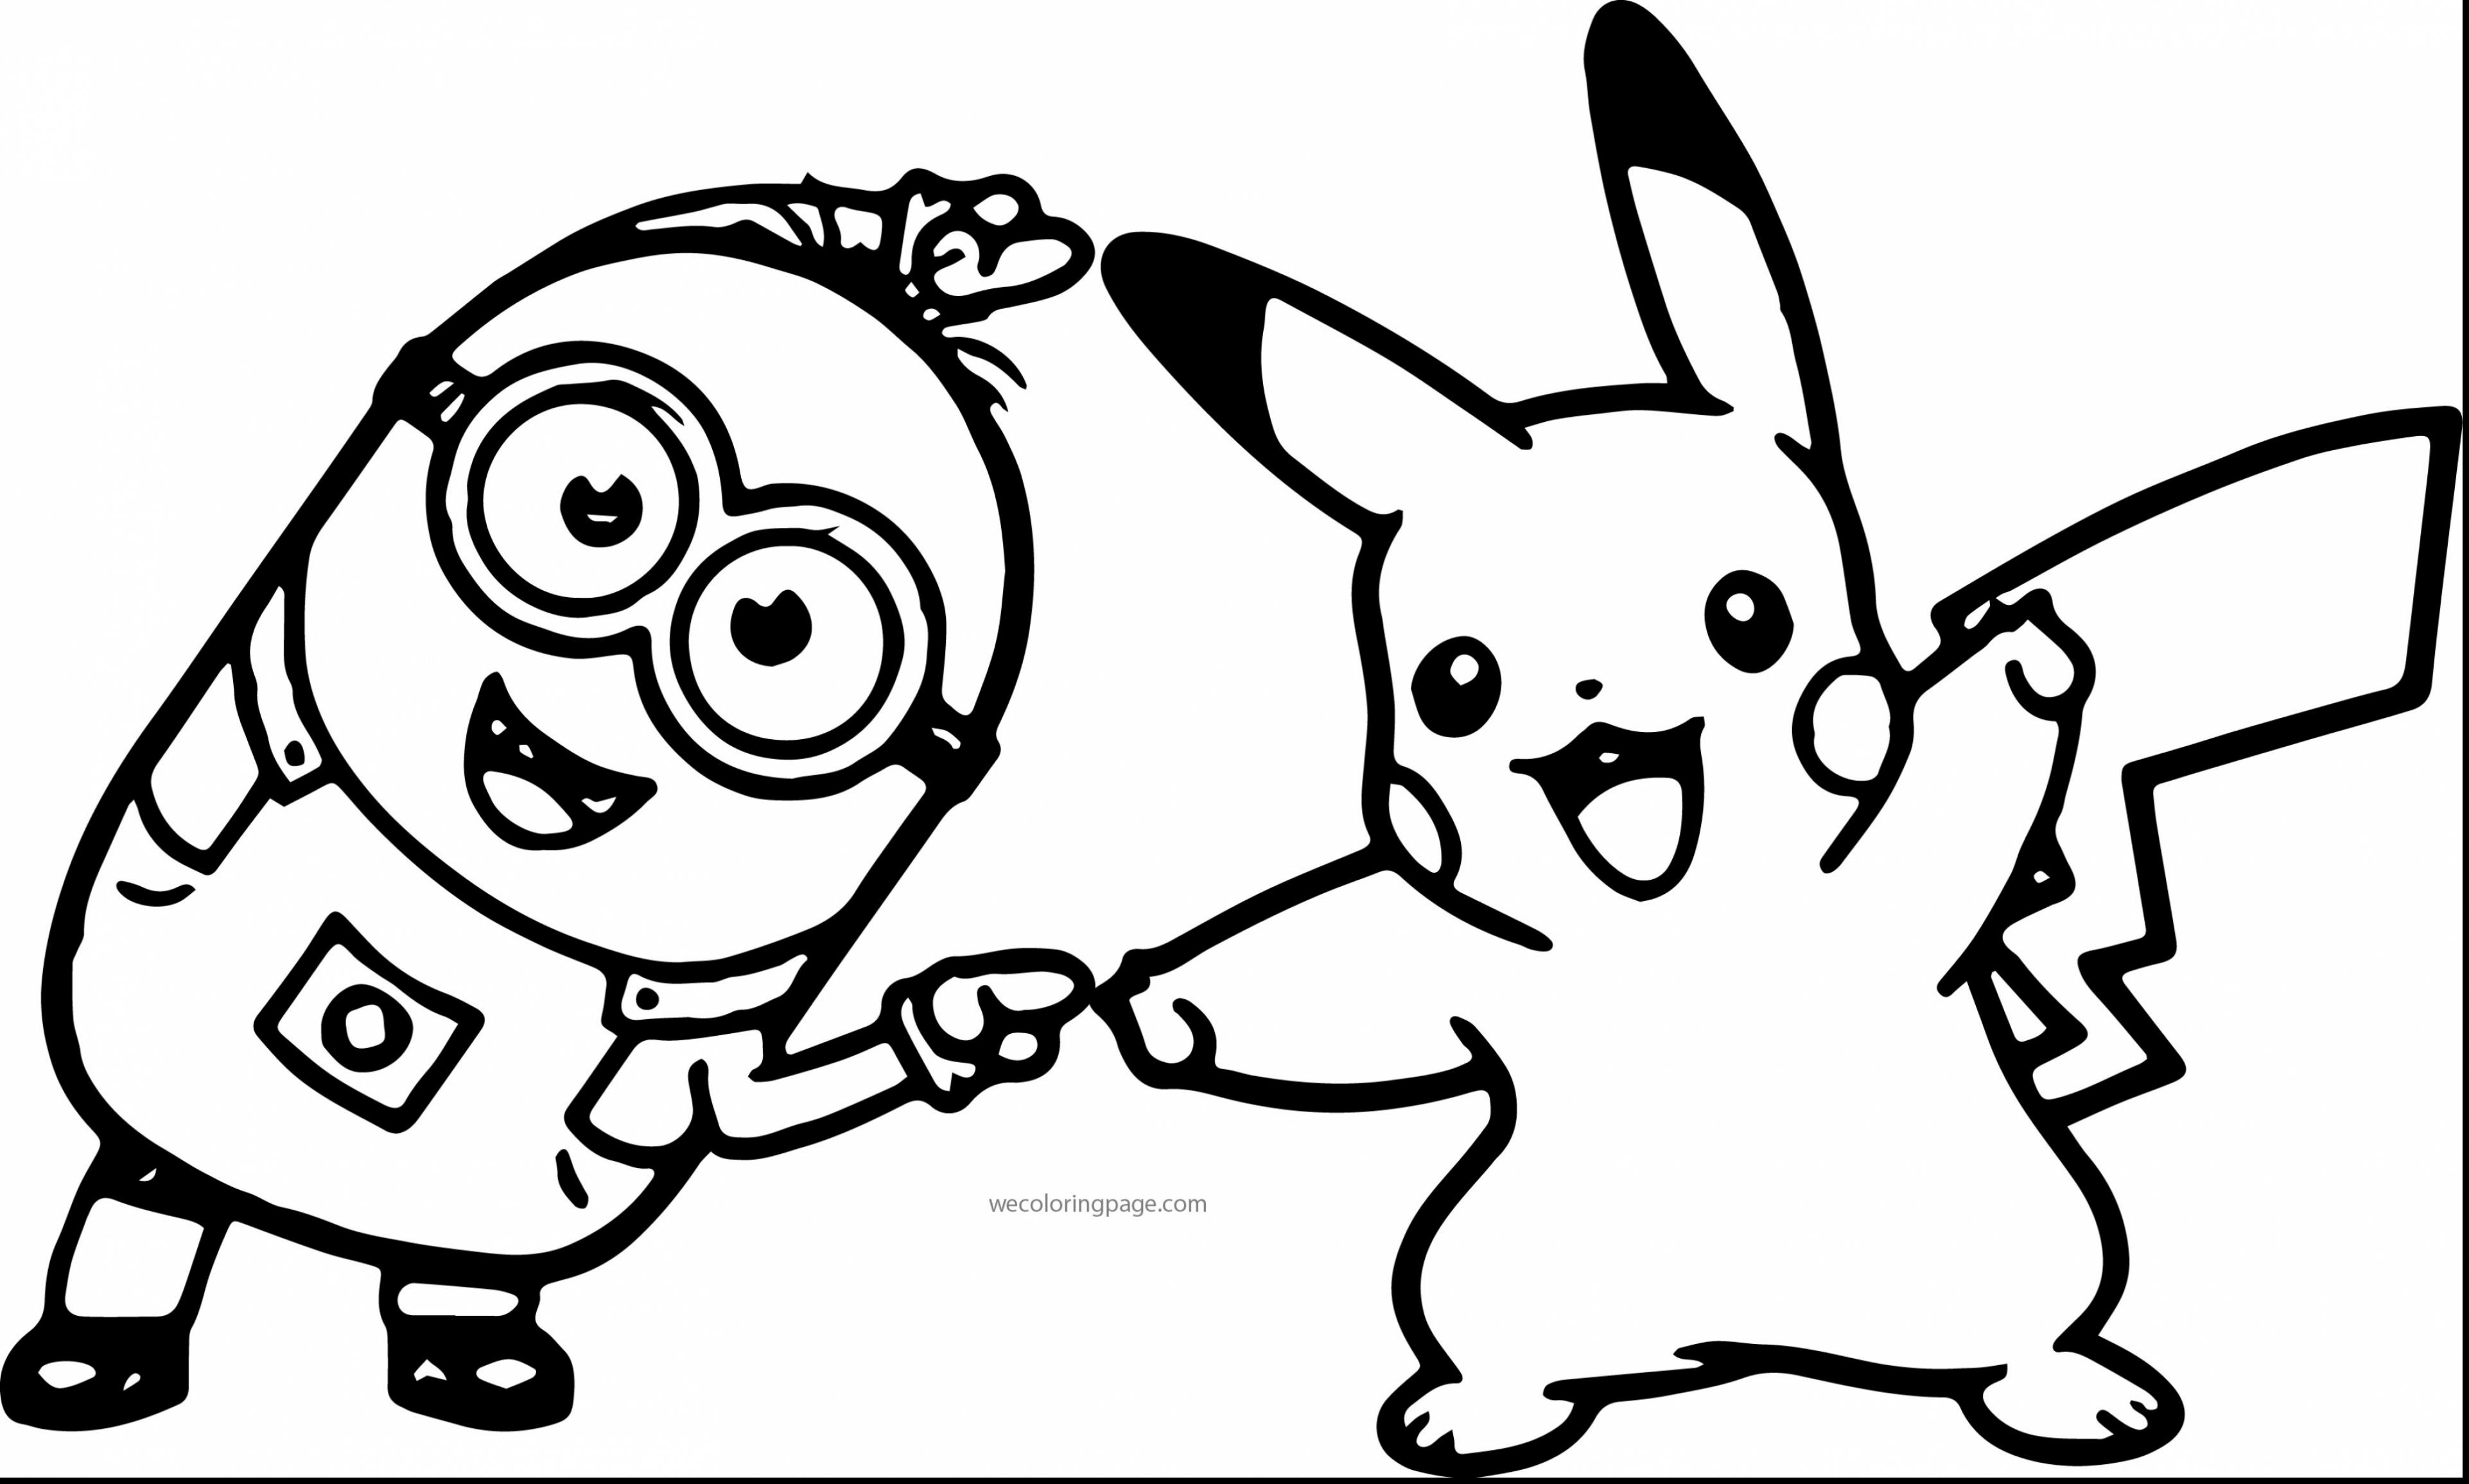 Pikachu Coloring Pages at GetDrawings.com | Free for ...